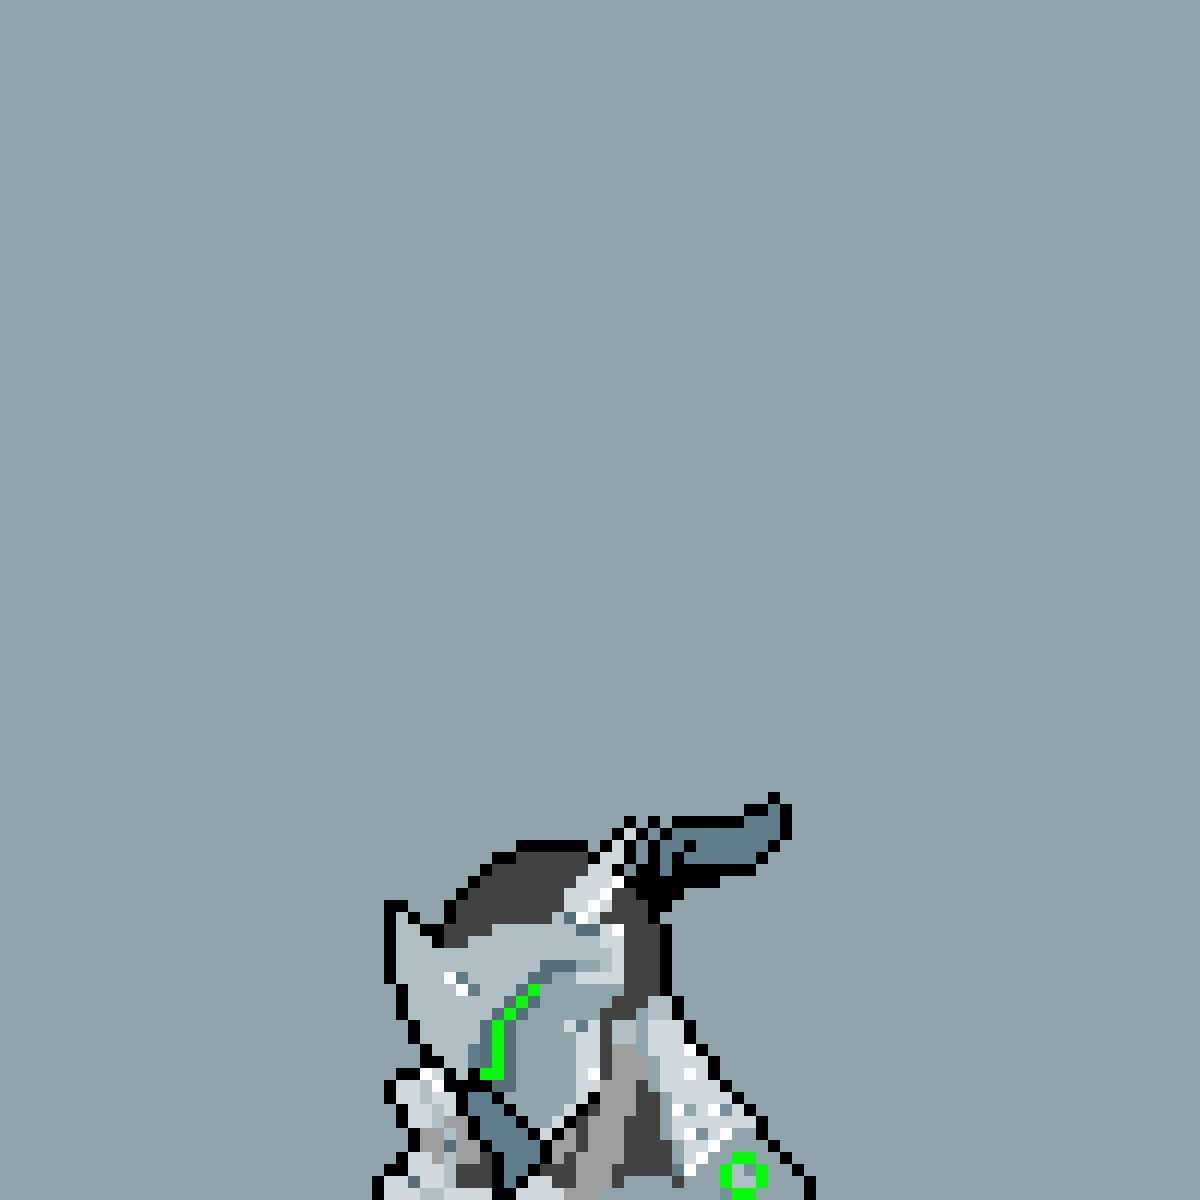 Genji overwatch by Mrmimeisawesome